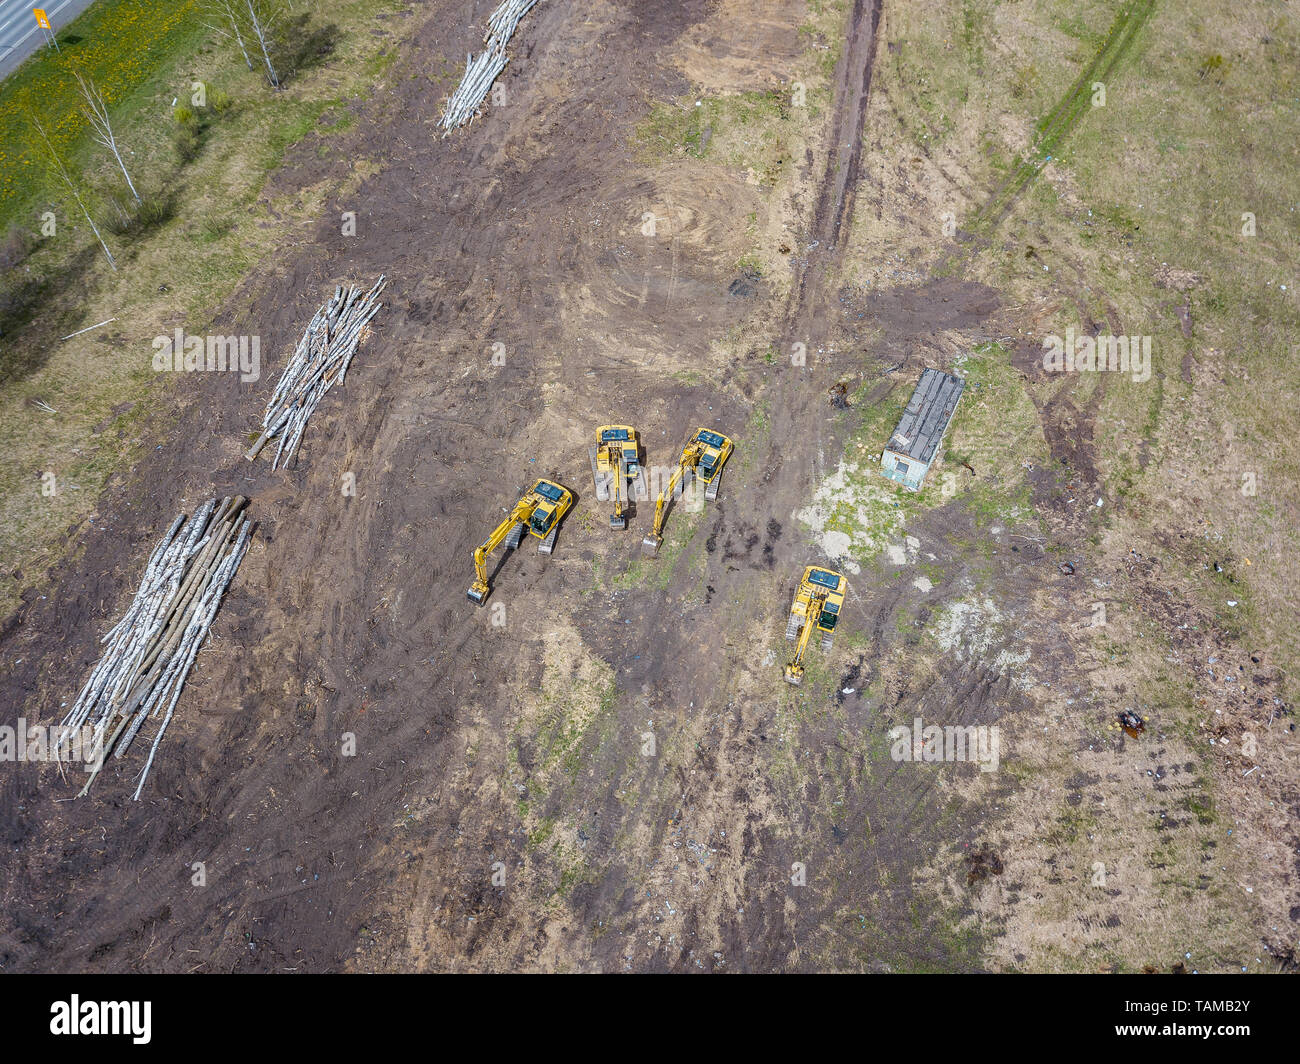 Aerial view of the four yellow crawler excavators that stand on the ground near the construction site and await the start of the working day digging t - Stock Image